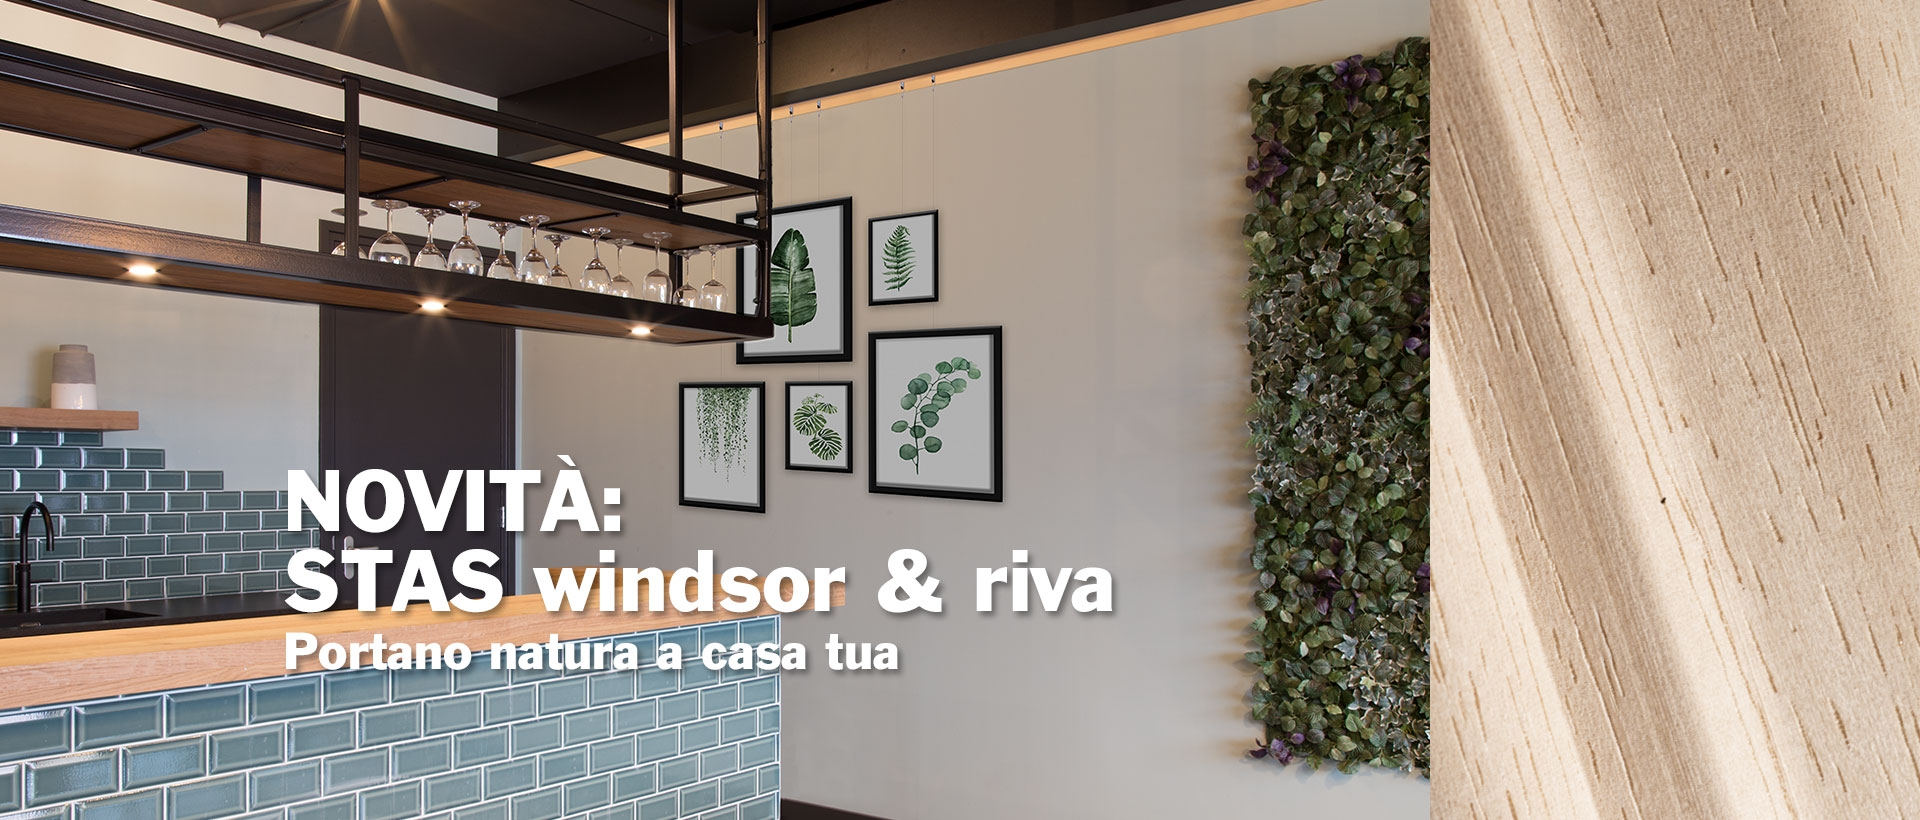 STAS windsor & riva ...